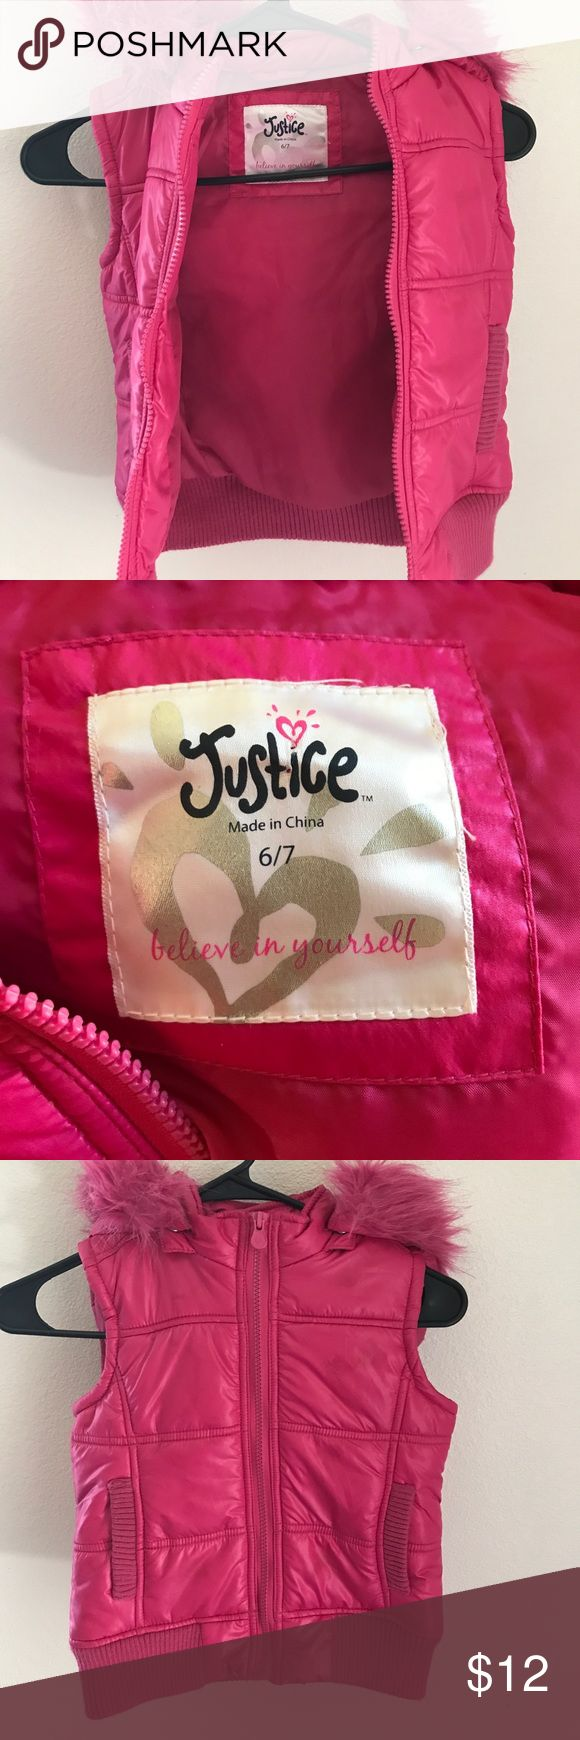 Hot Pink Justice Girls puffer vest 6/7 Hot pink hooded puffer vest by justice. Size 6/7 removable hood. Has a name written on the inside thats not noticeable when worn. Justice Jackets & Coats Vests